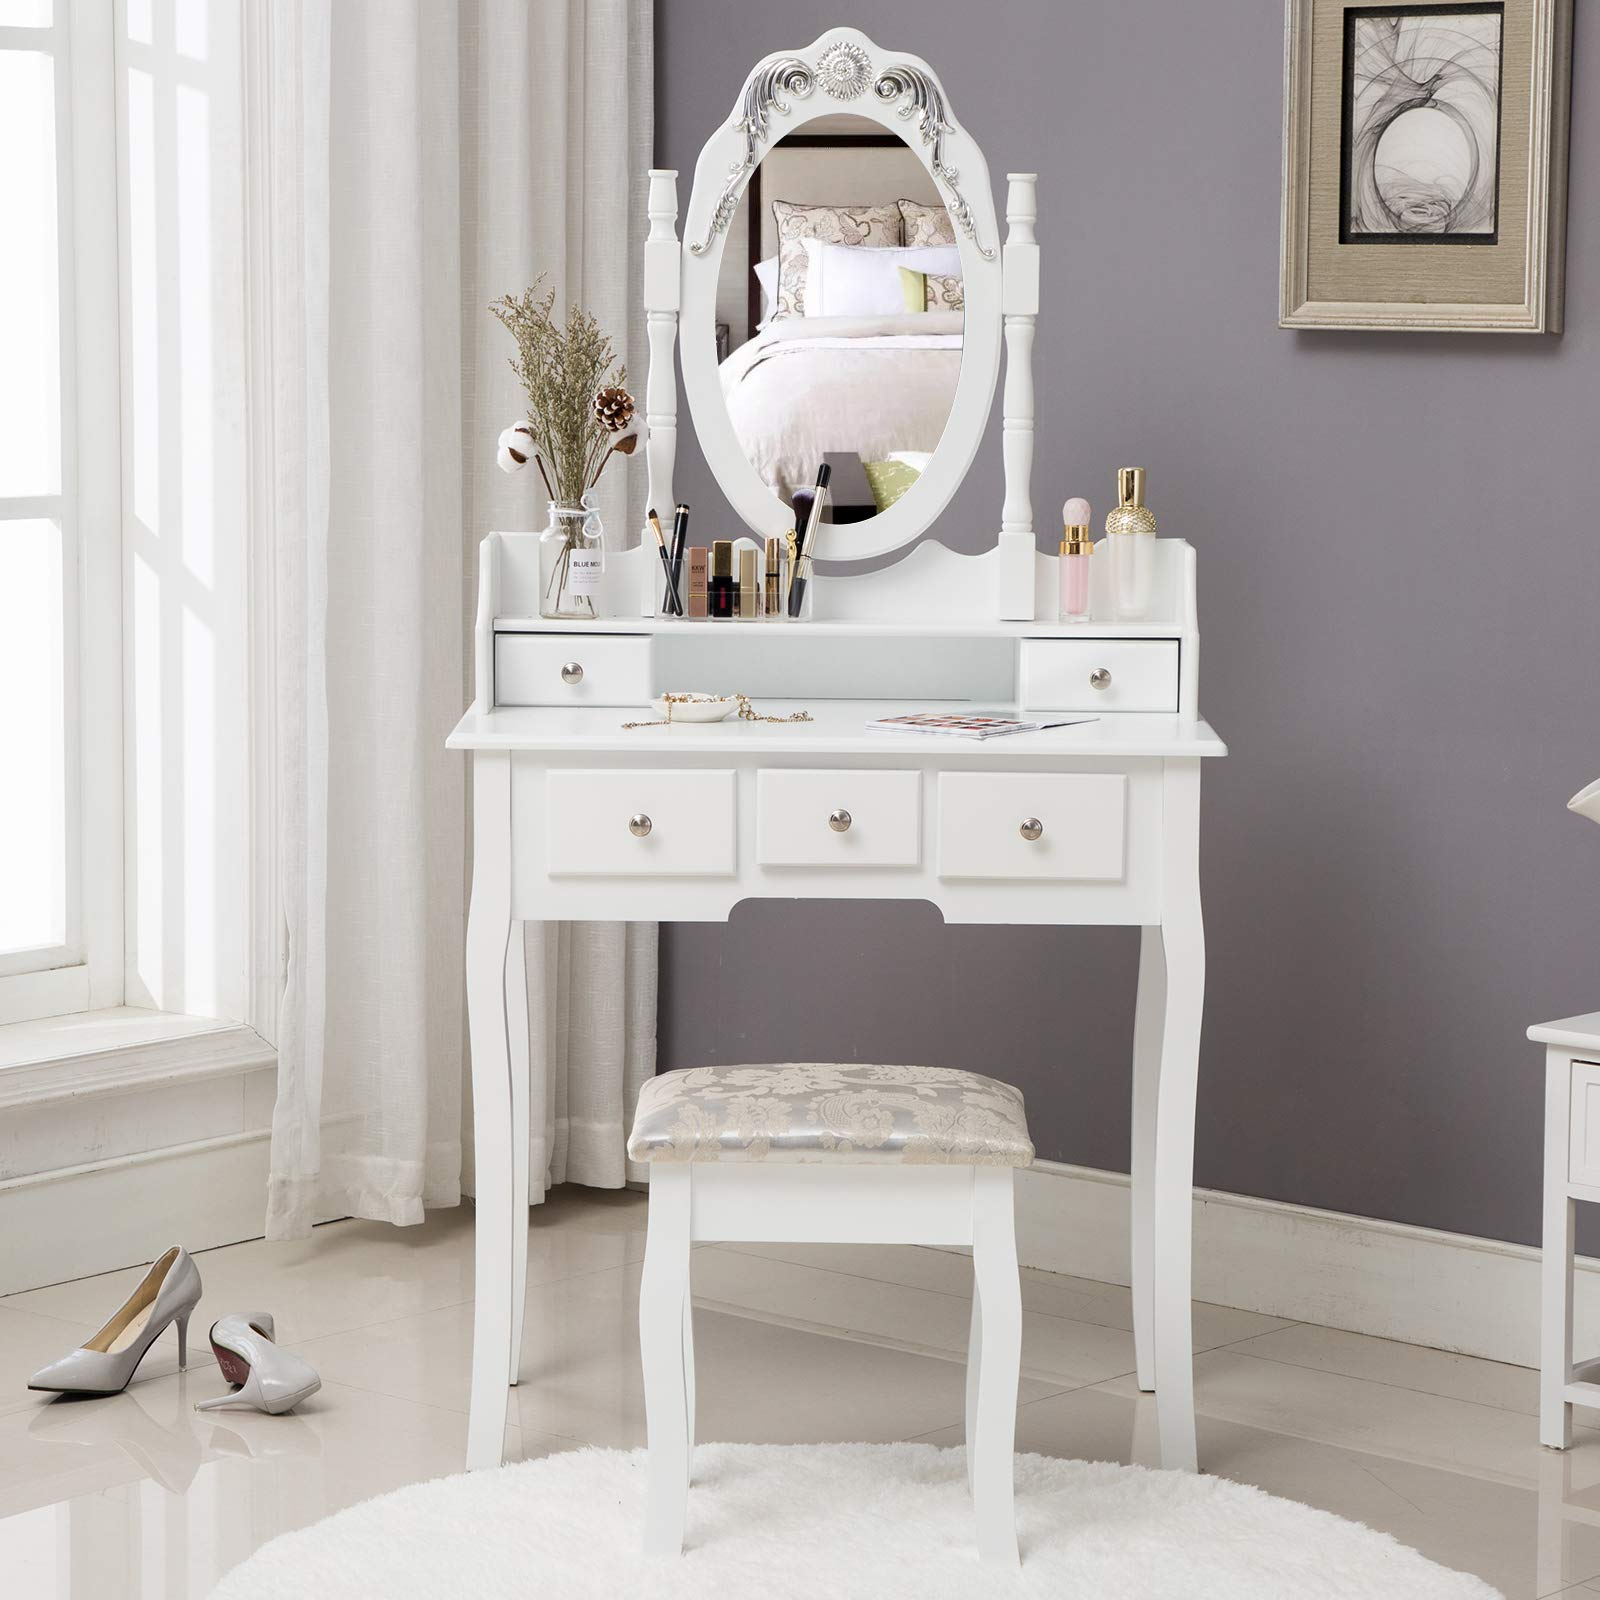 HONBAY Makeup Vanity Table Set and Cushioned Stool, Oval Mirror and Surprise Gift Makeup Organizer 5 Drawers Dressing Table White by HONBAY